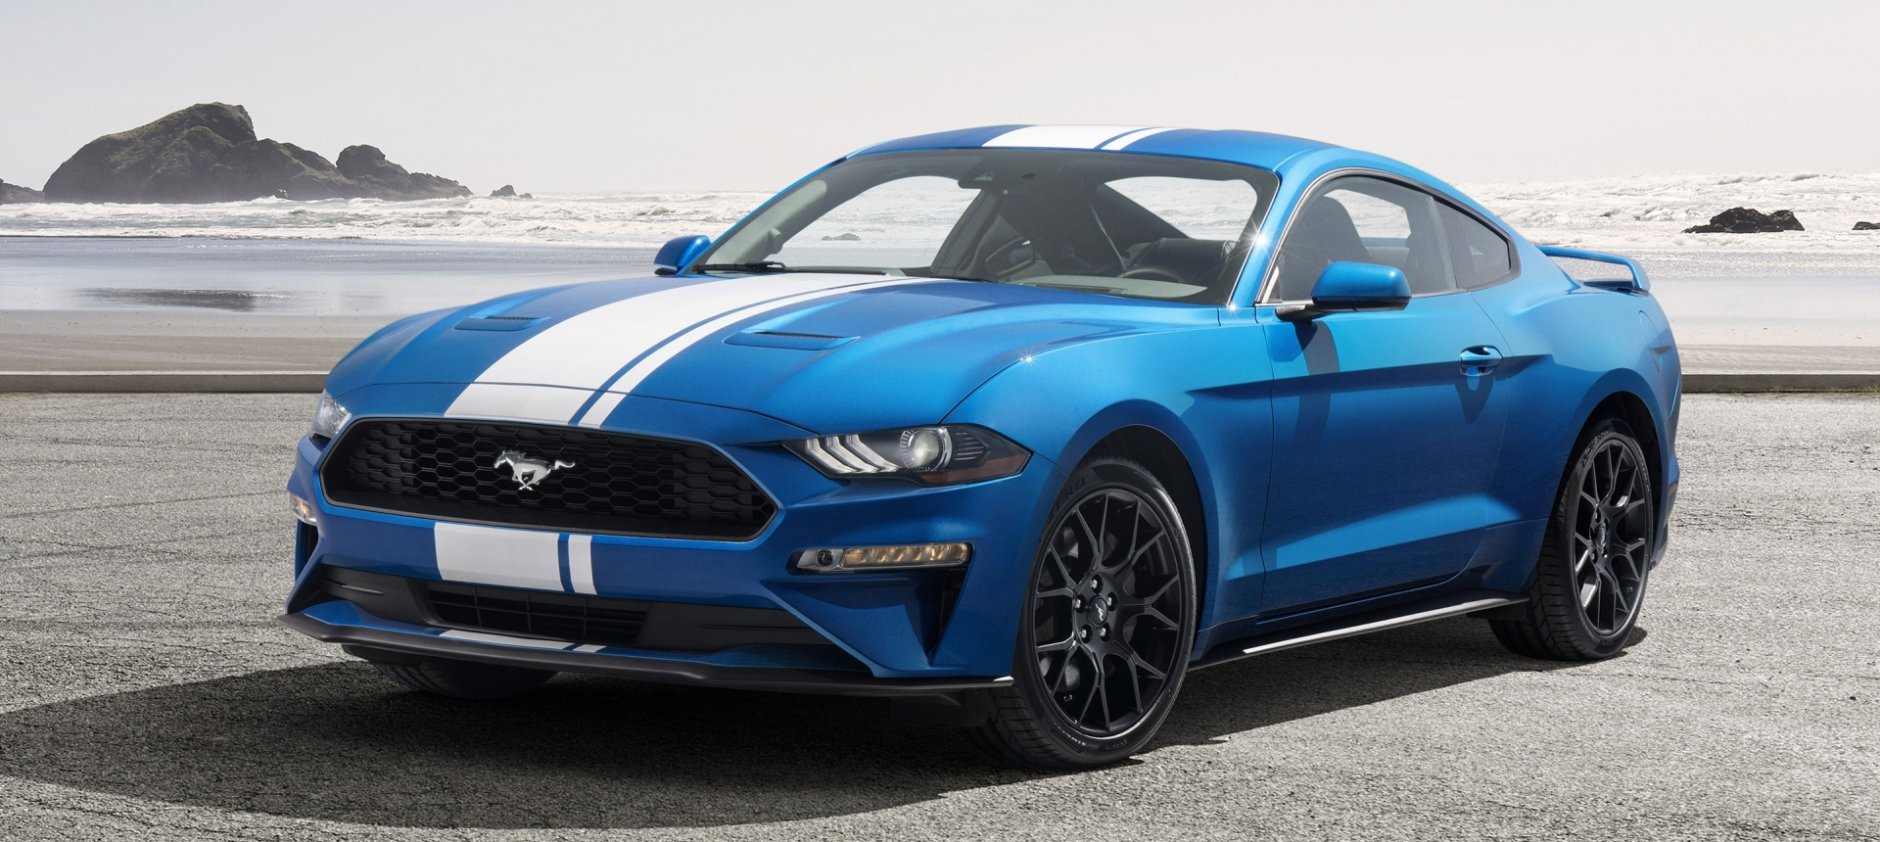 "<p>Ford offers 0% financing for 36 months on the <a href=""https://cars.usnews.com/cars-trucks/ford/mustang/2019?utm_source=press&amp;utm_medium=releaselinks&amp;utm_campaign=deals"" target=""_blank"" rel=""noopener"">2019 Ford Mustang</a>.</p>"